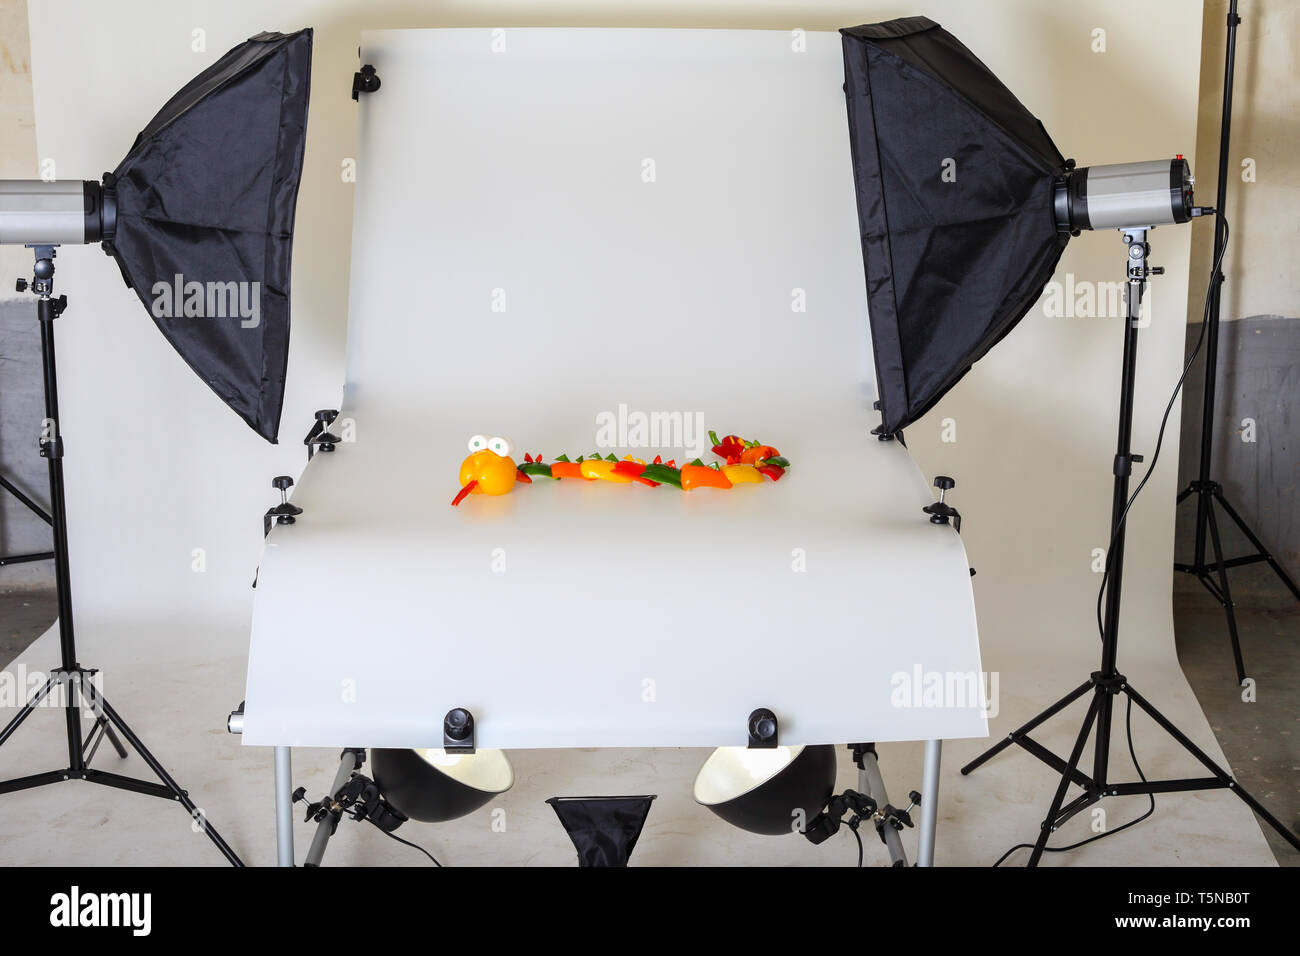 Photo table for product photography in a studio - Stock Image